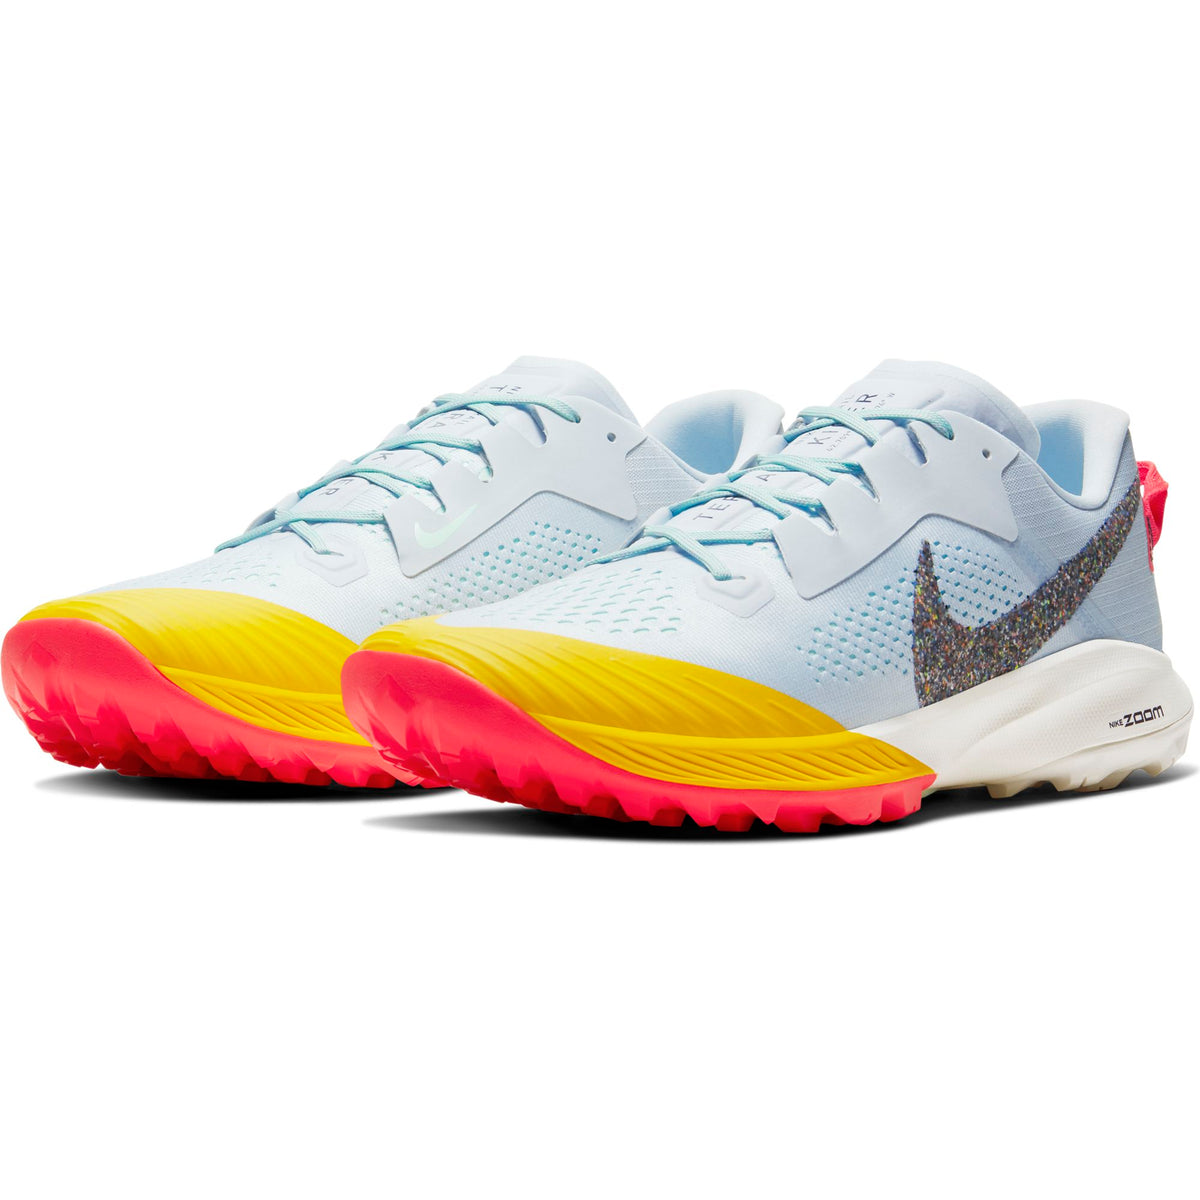 Nike Air Zoom Terra Kiger 6 Mens